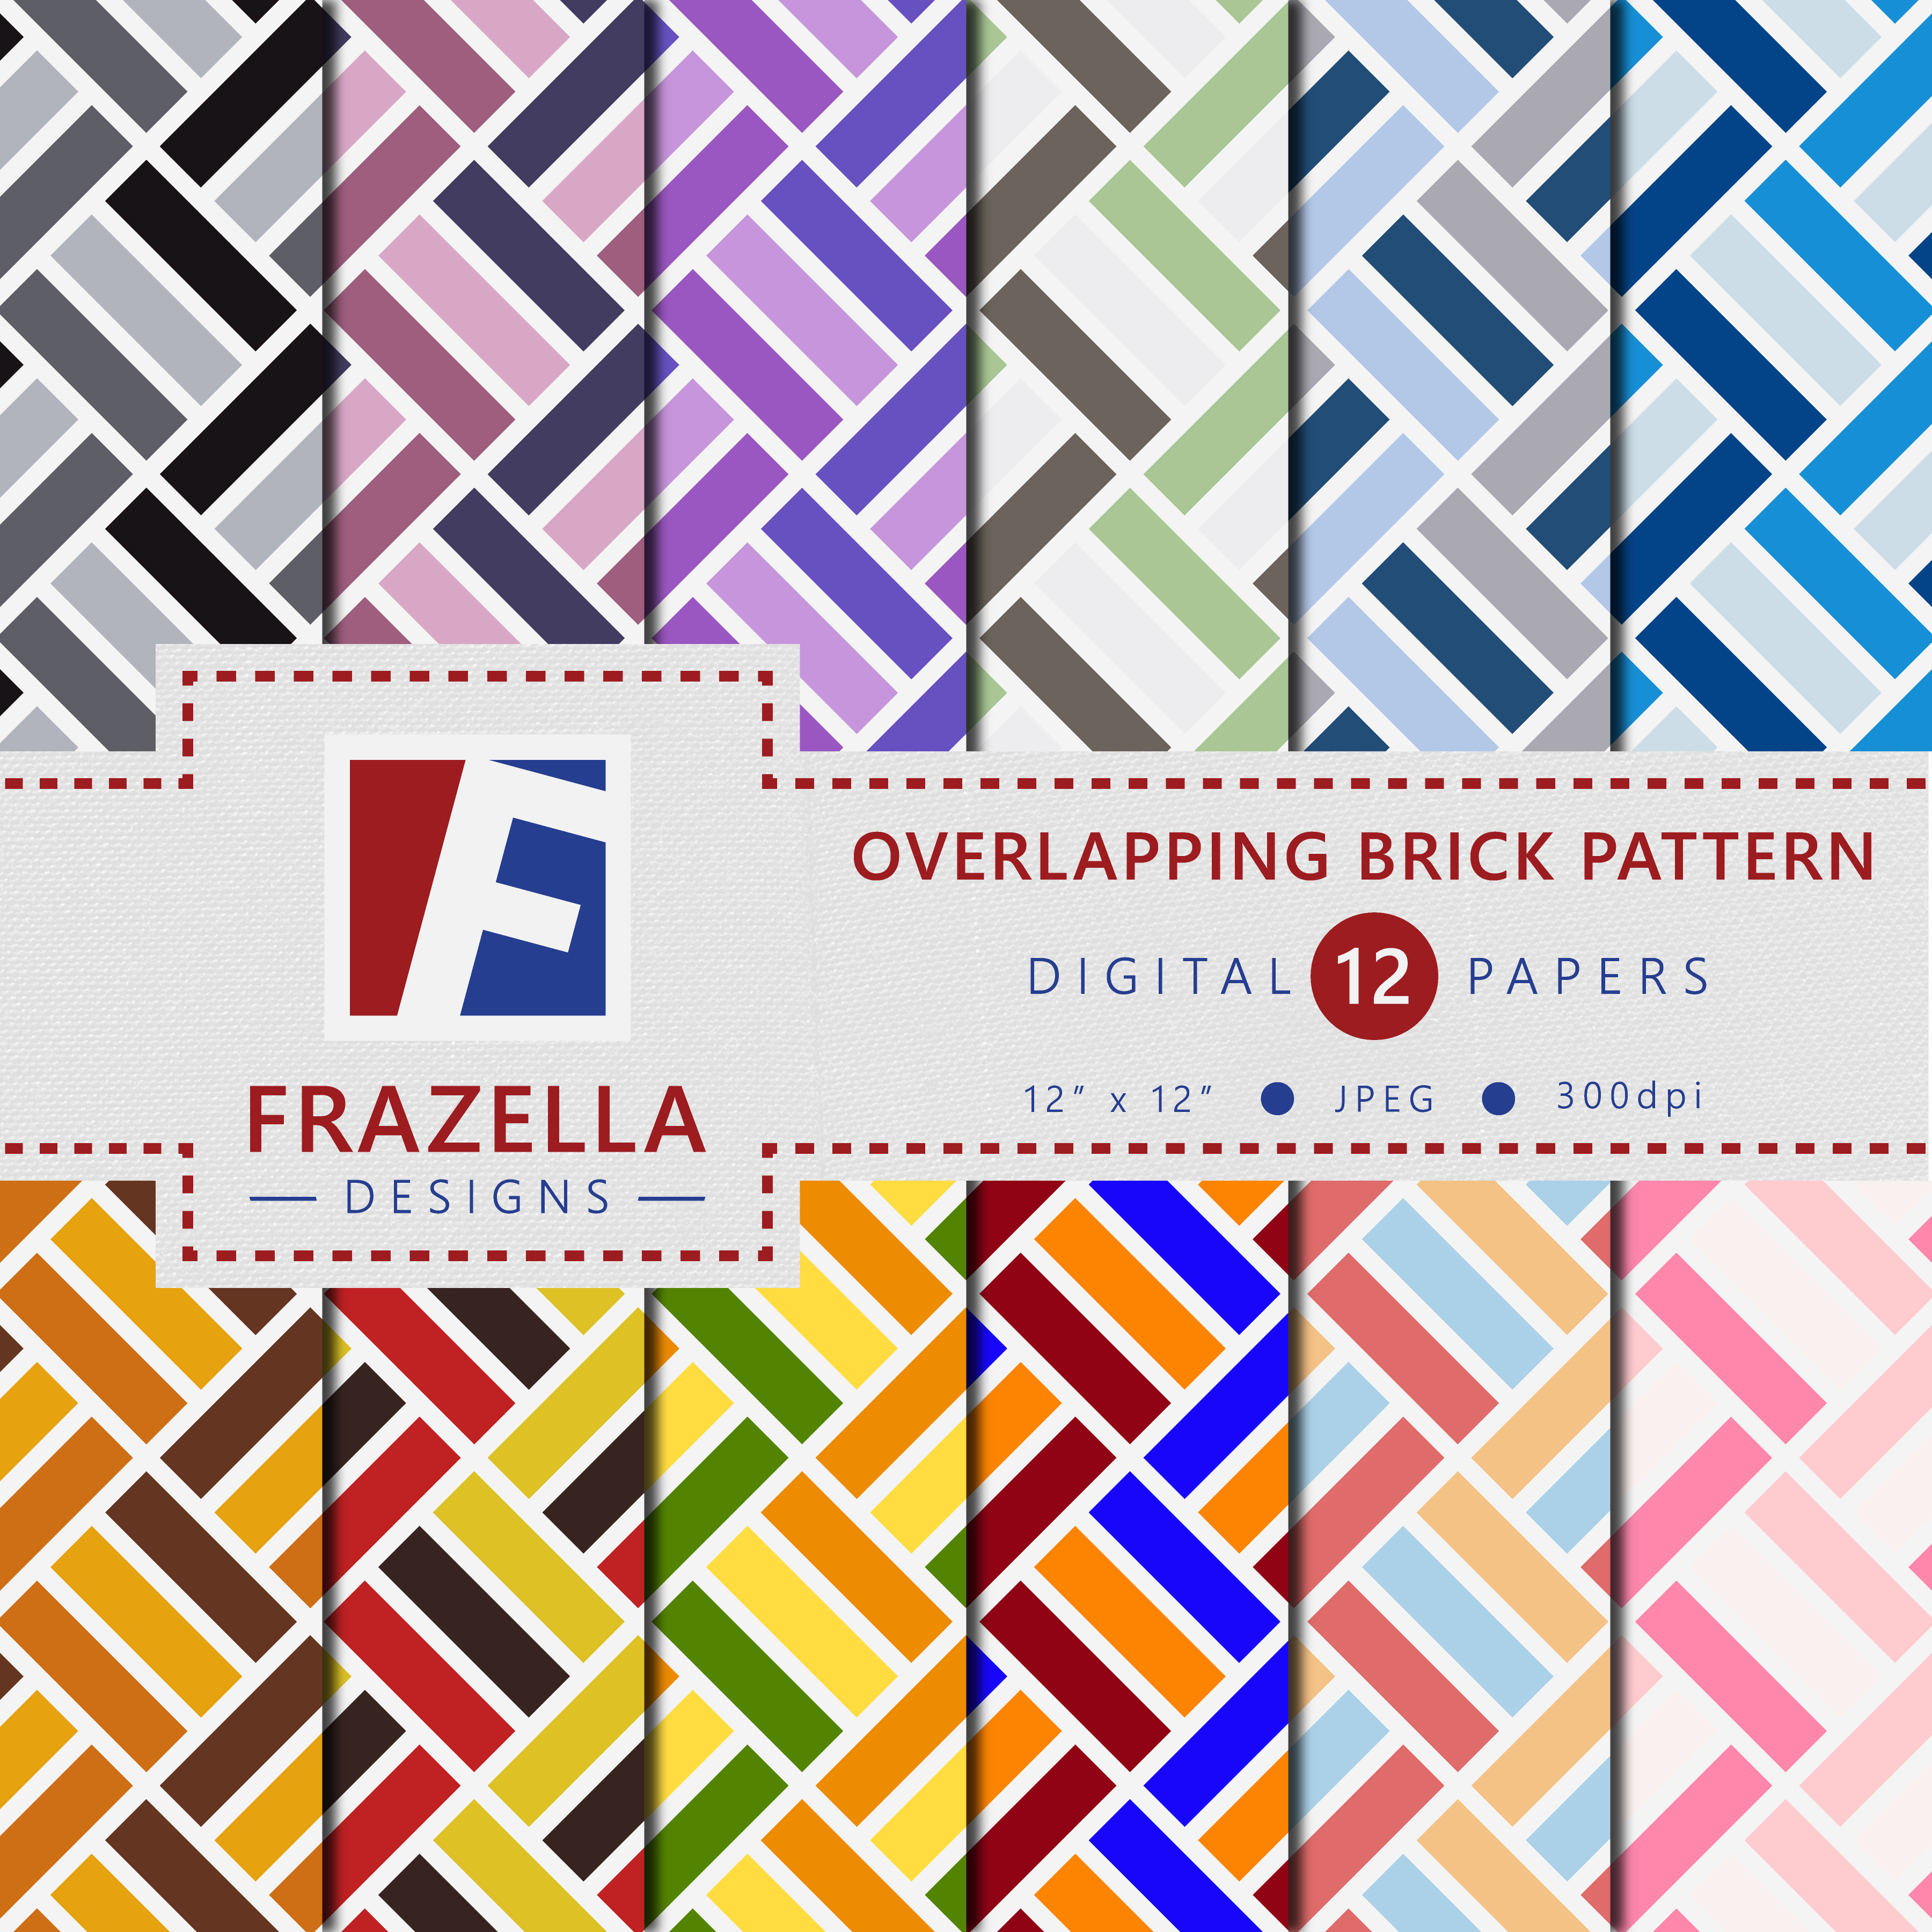 Download Free Overlapping Brick Pattern Digital Paper Collection Graphic By for Cricut Explore, Silhouette and other cutting machines.